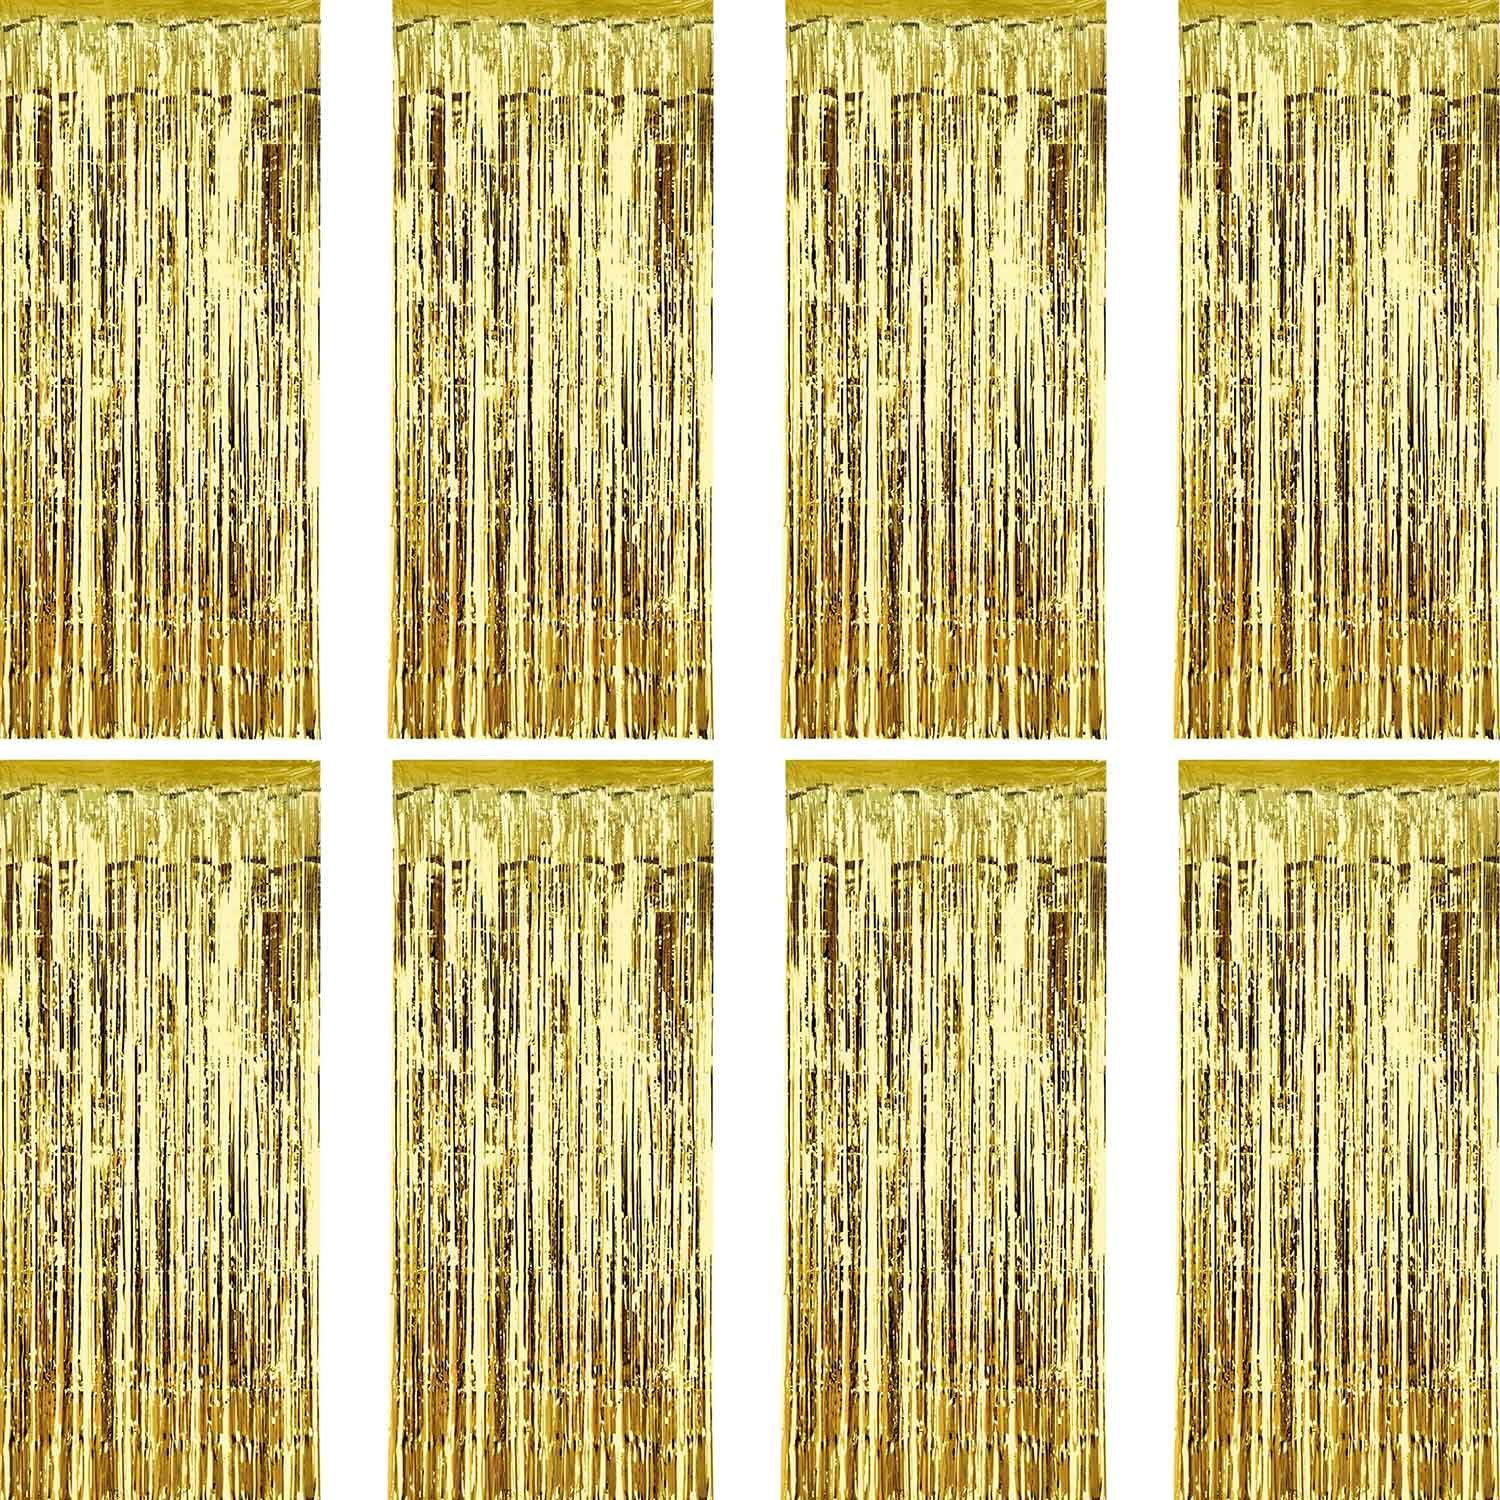 Sumind 8 Pack Foil Curtains Fringe Curtains Tinsel Backdrop Metallic Curtains for Birthday Wedding Party Photo Booth Decorations (Gold) by Sumind (Image #1)